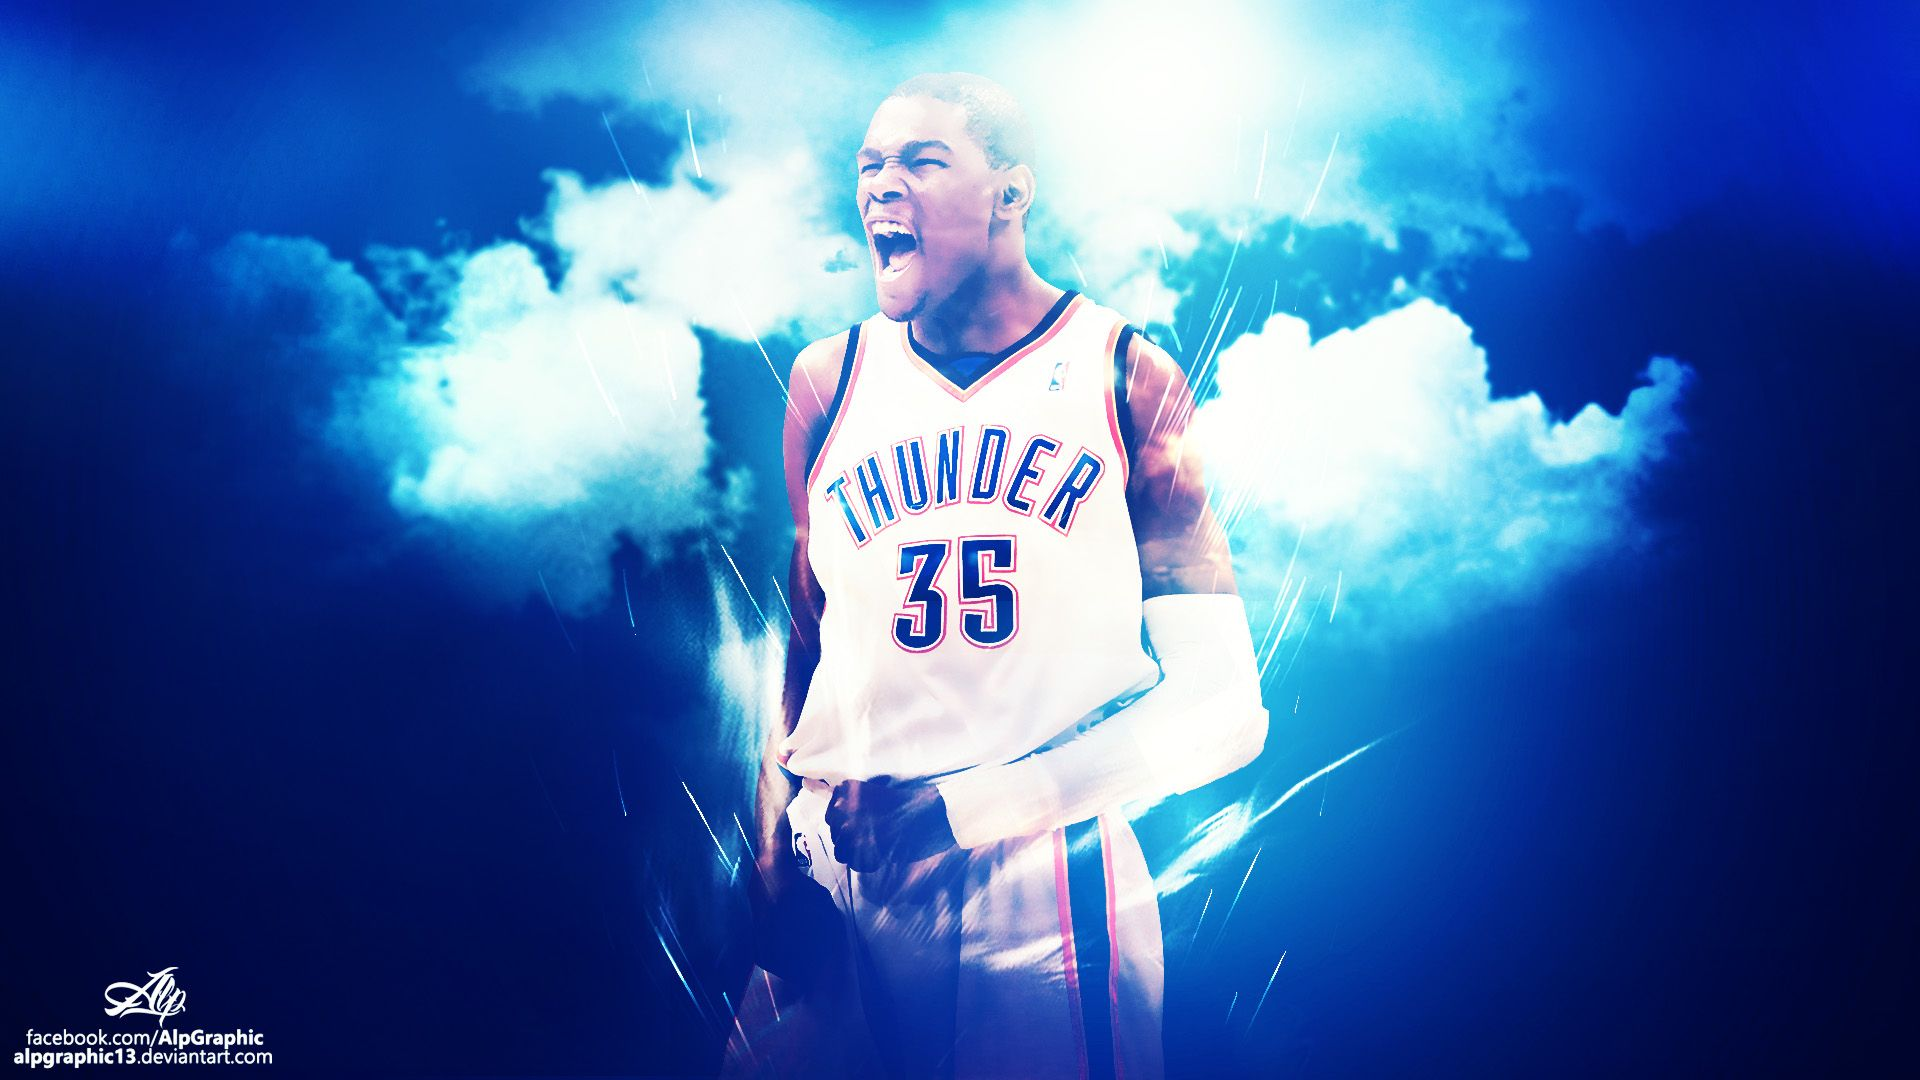 Russell westbrook wallpaper iphone wallpapersafari - Kevin Durant Wallpapers High Resolution And Quality Download